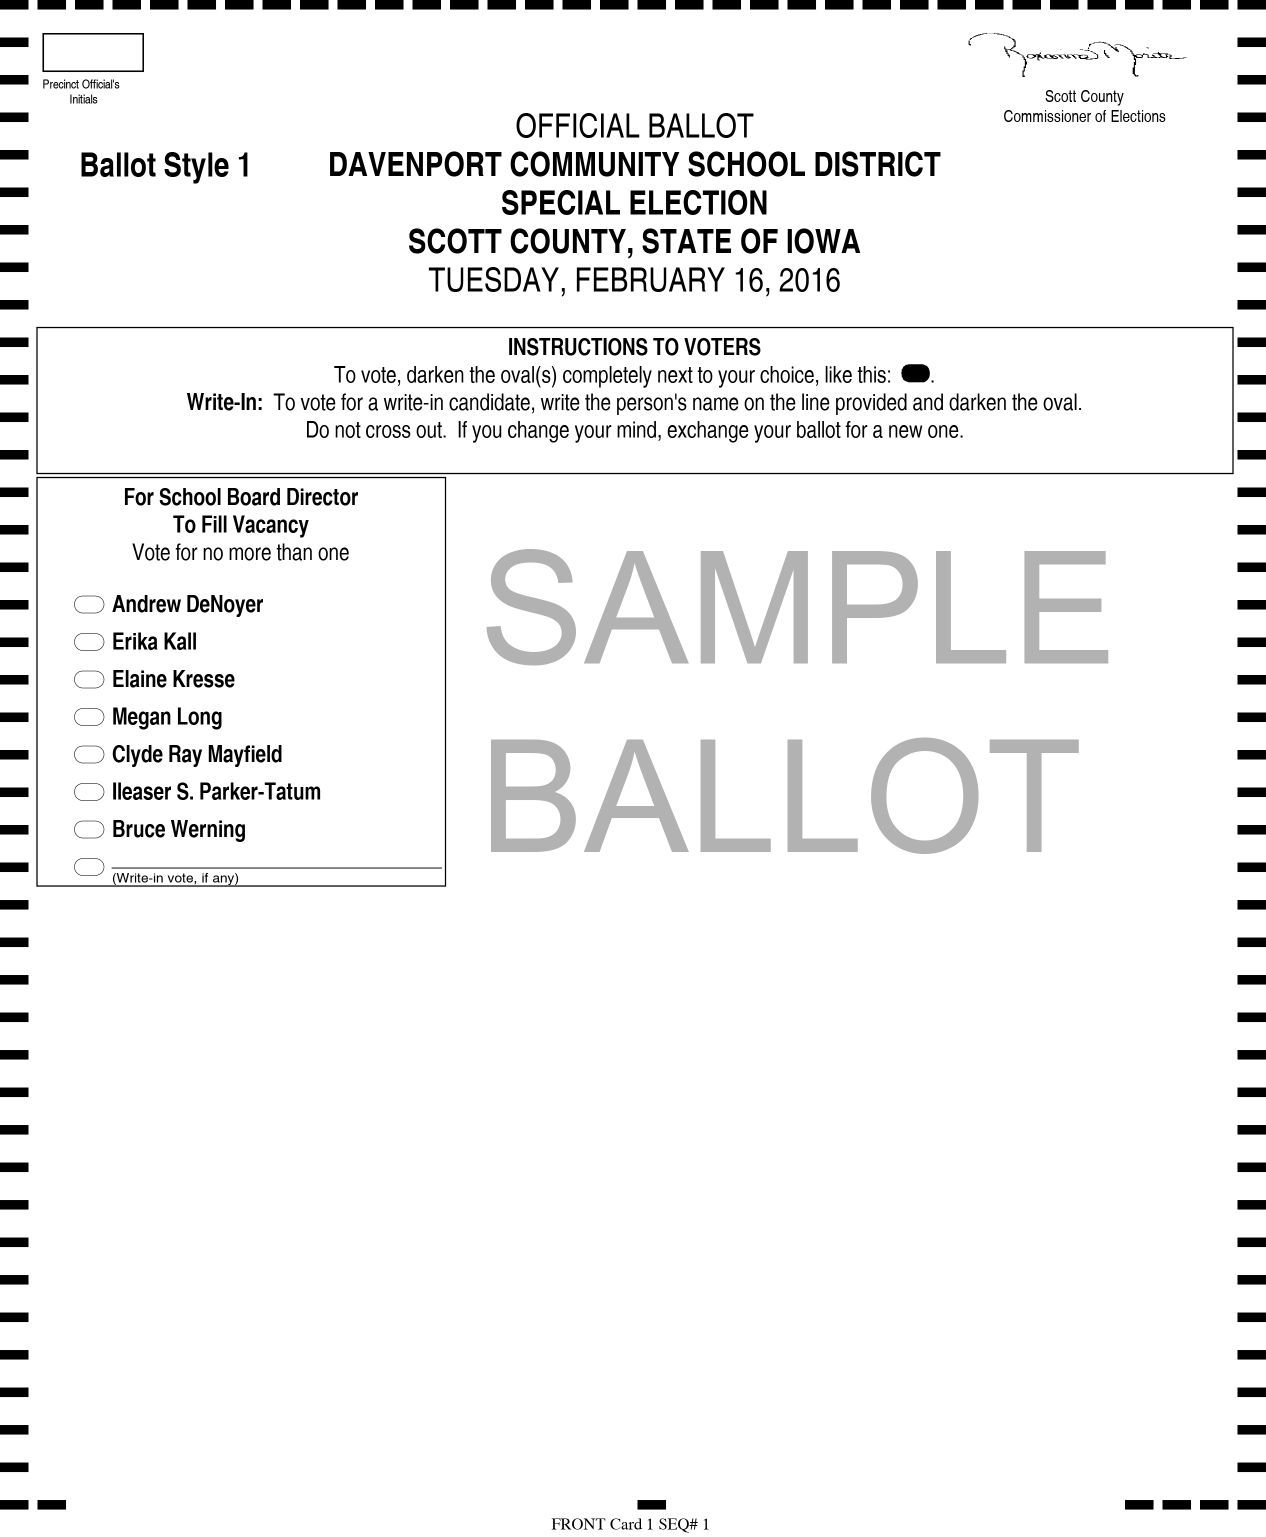 Scott County to provide interactive sample ballots | Government ...